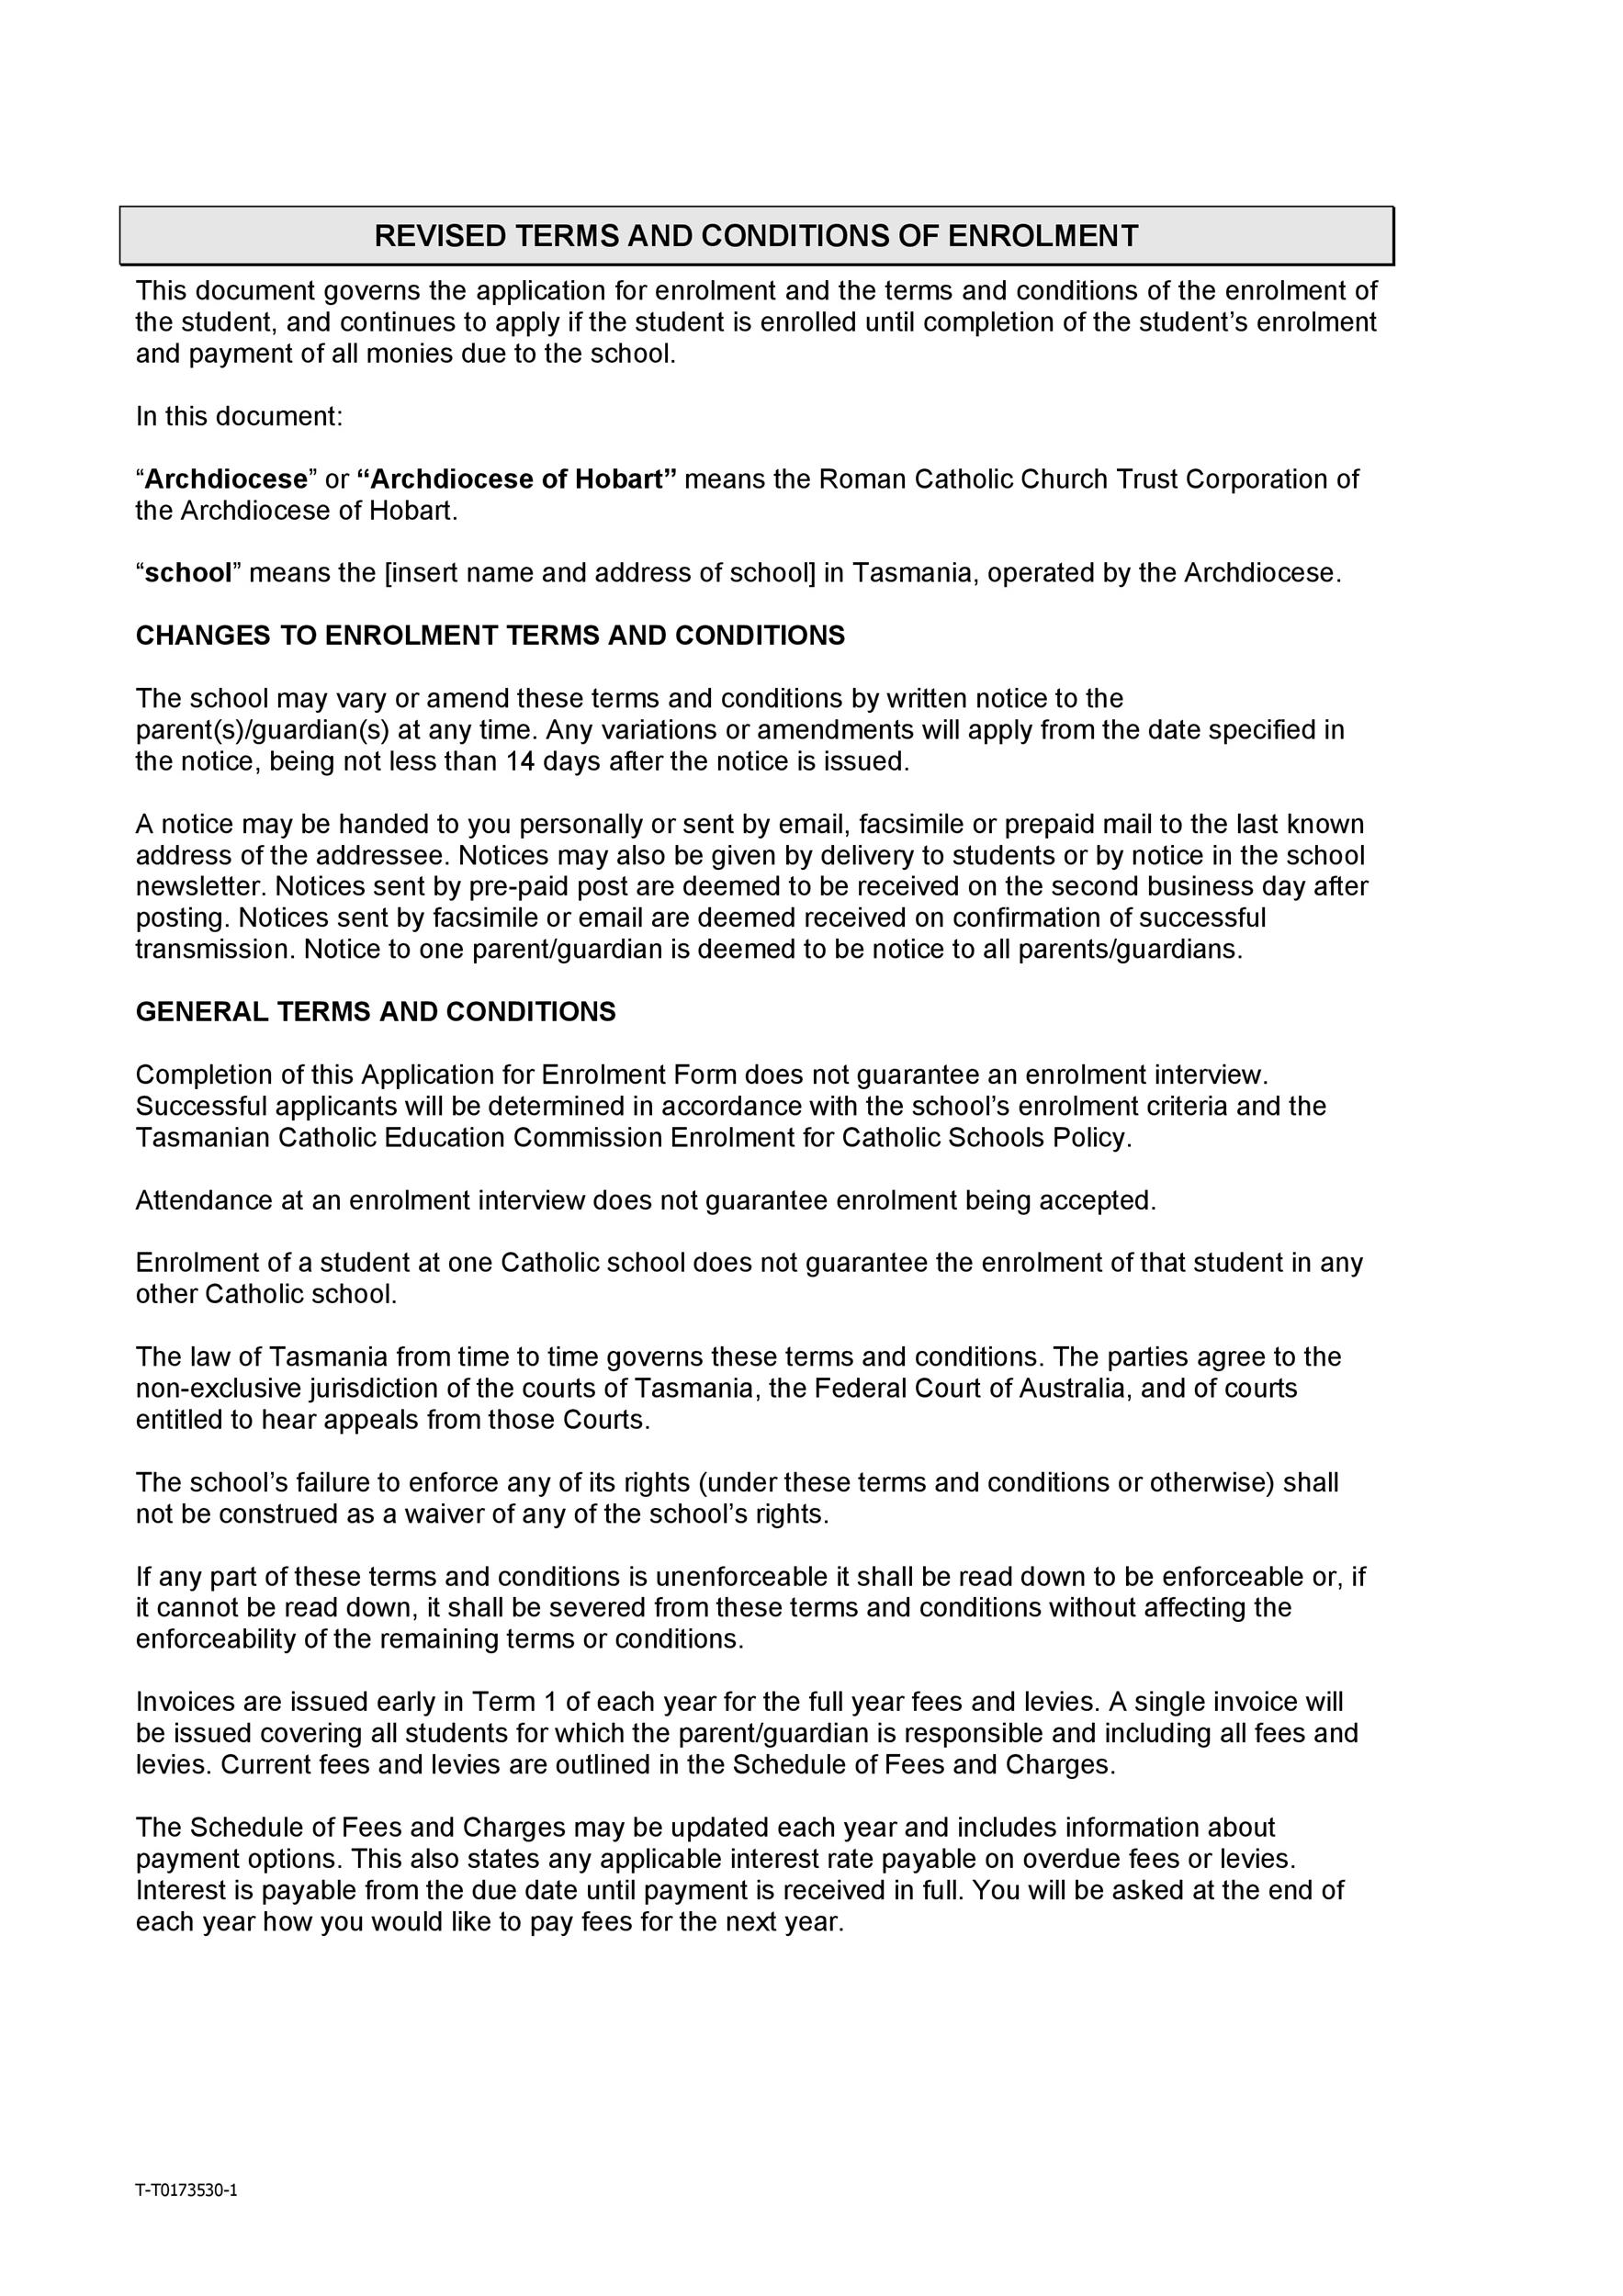 Free terms and conditions template 38